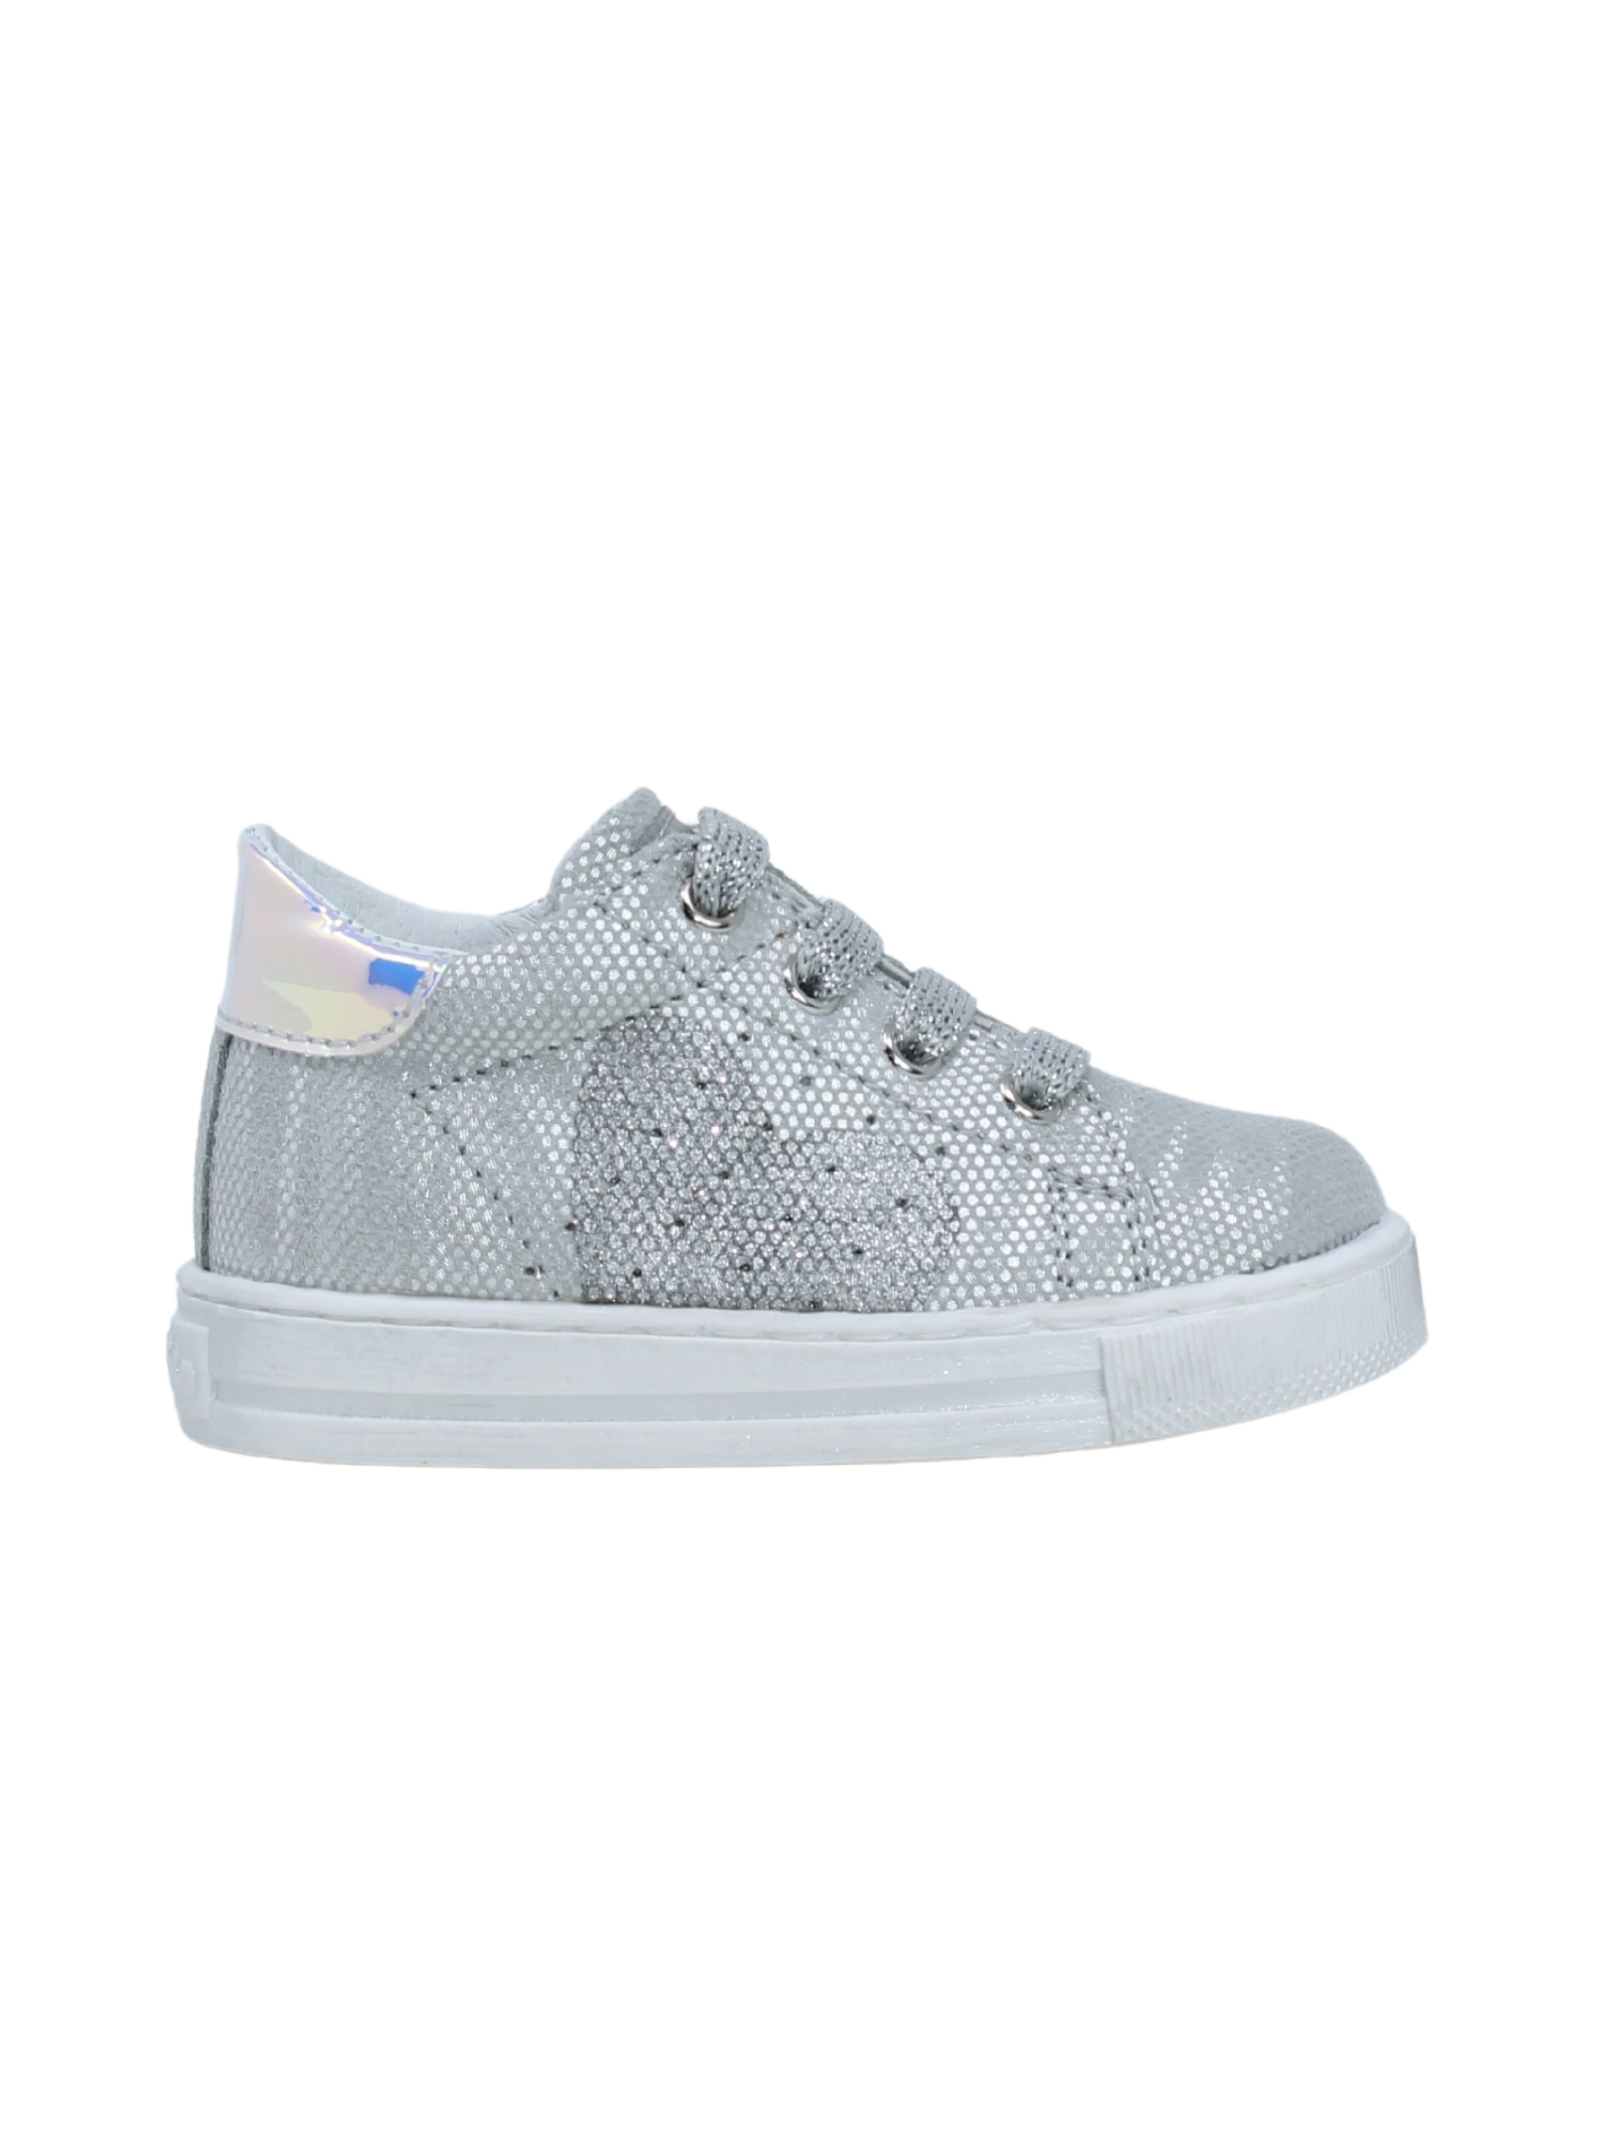 Sneakers Argento Heart FALCOTTO | Sneakers | 20141150Q04